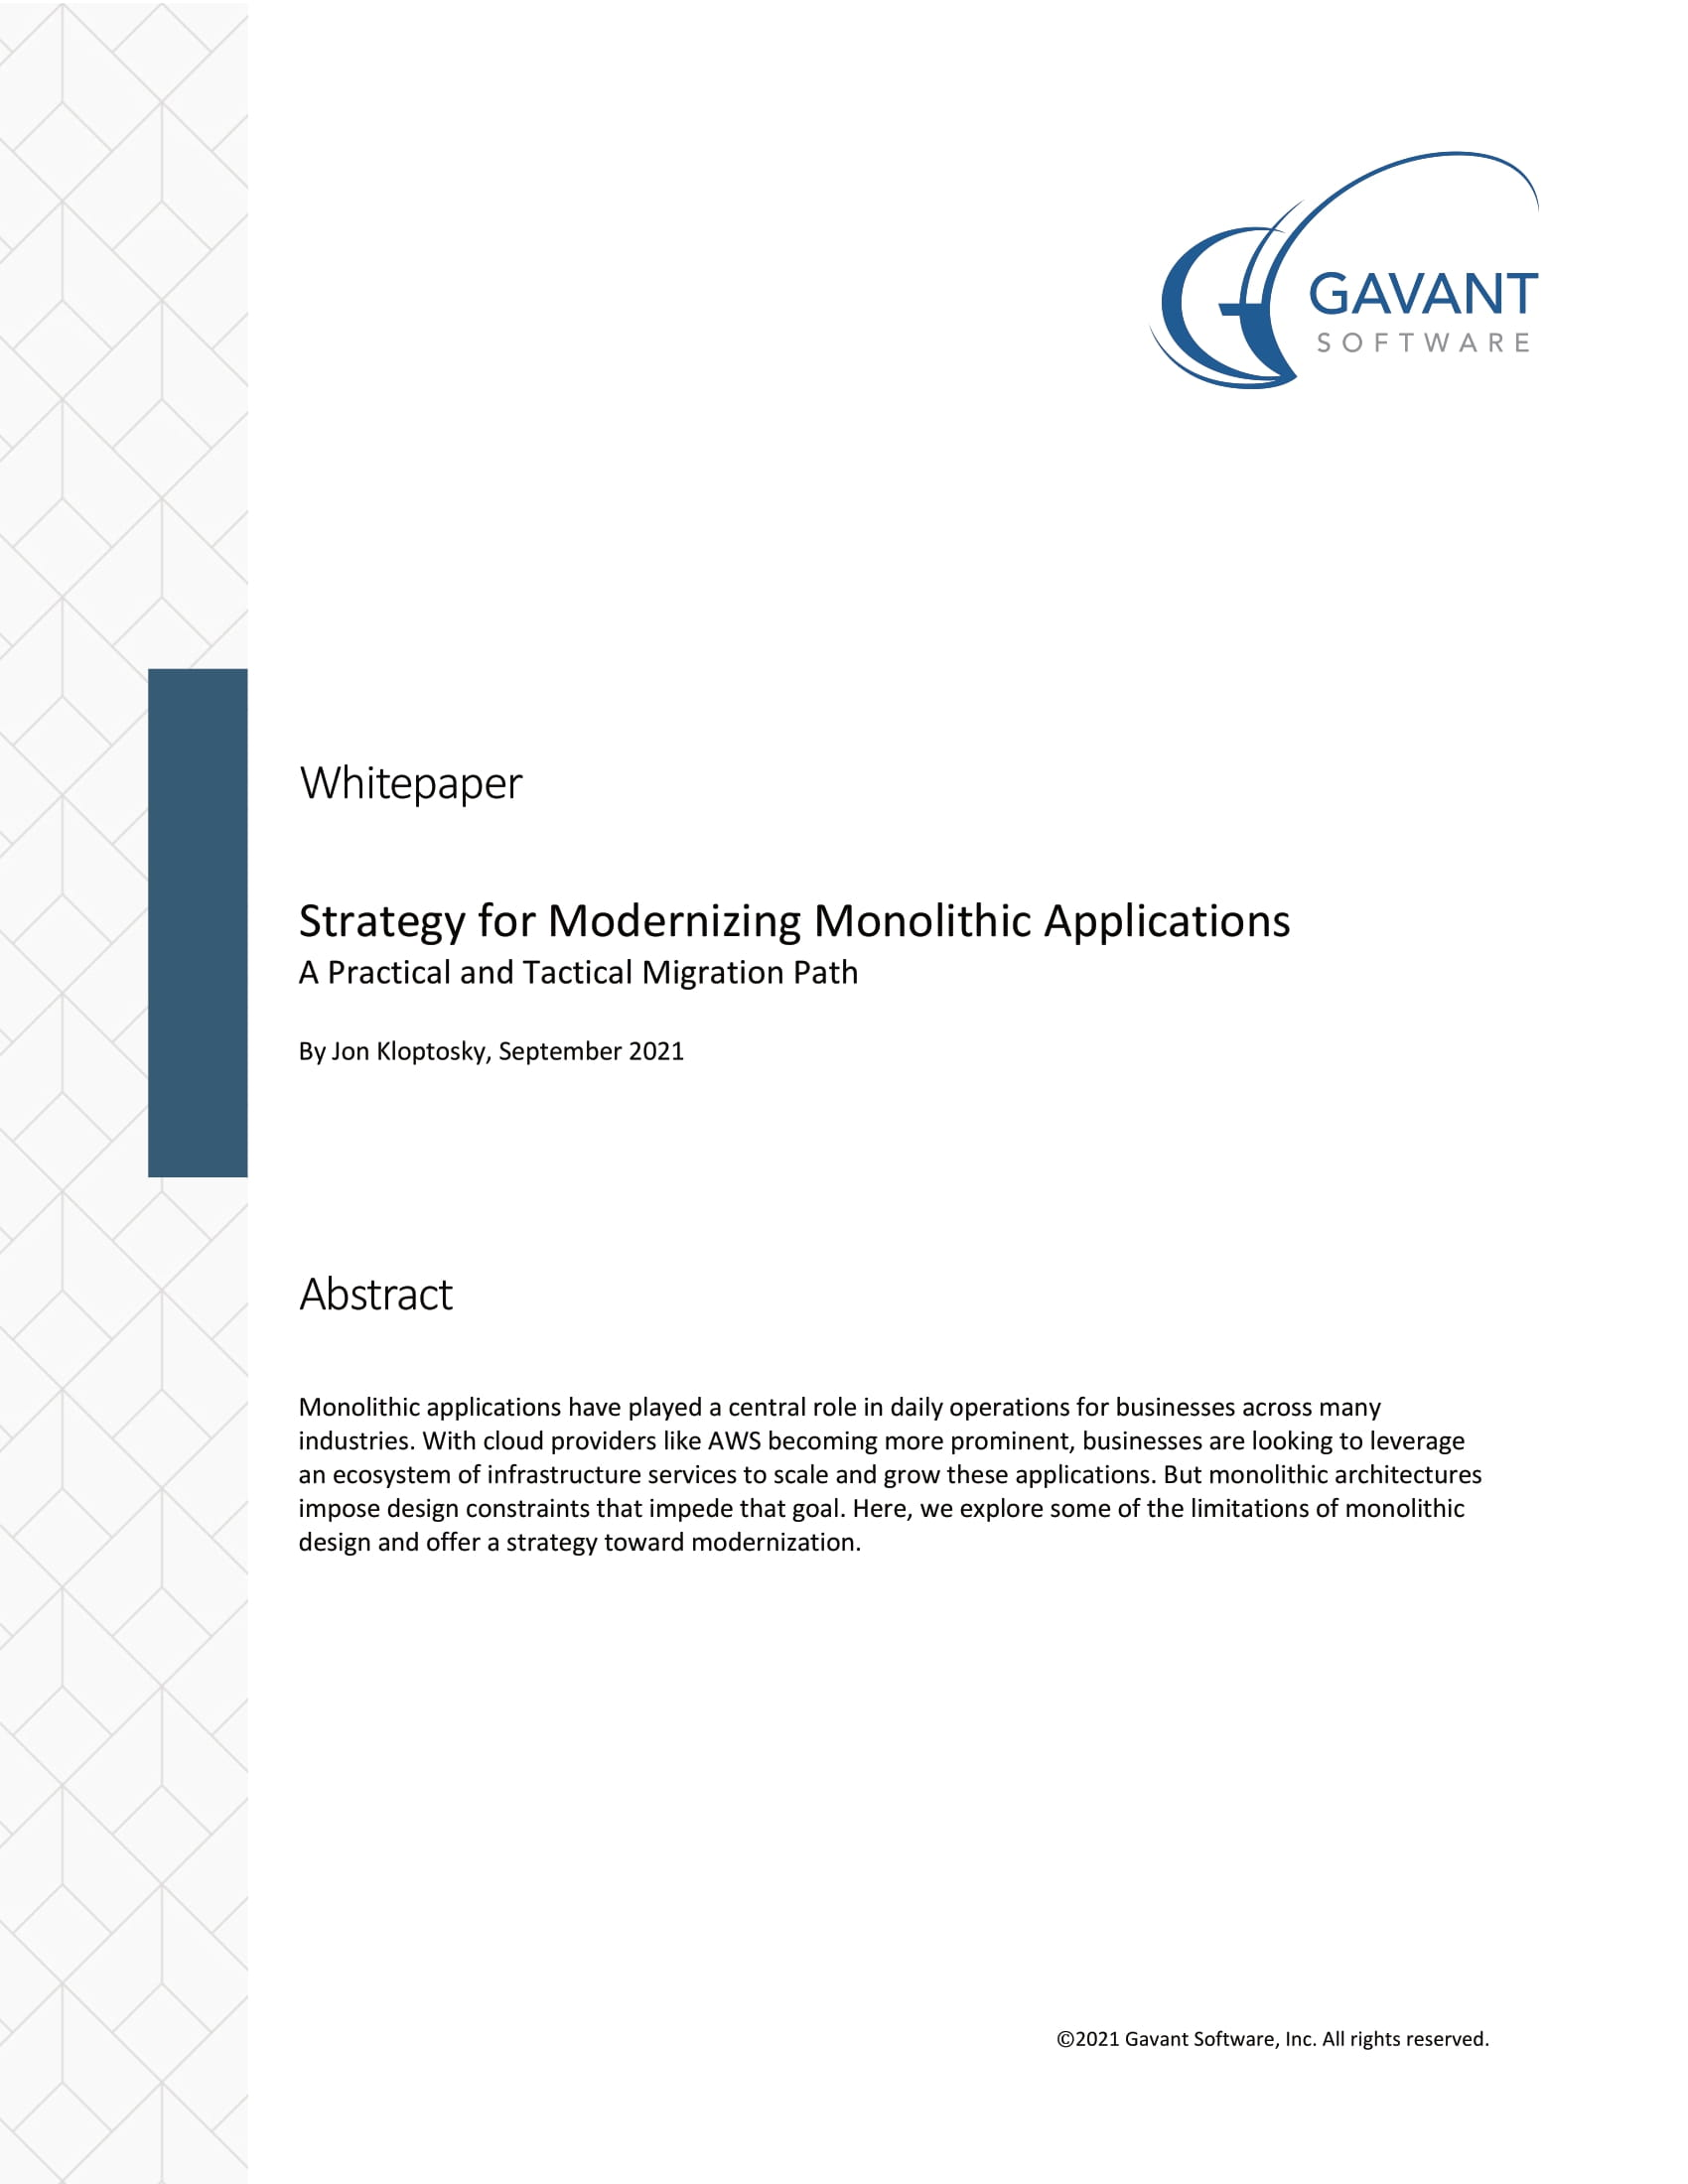 Strategy for Modernizing Monolithic Applications